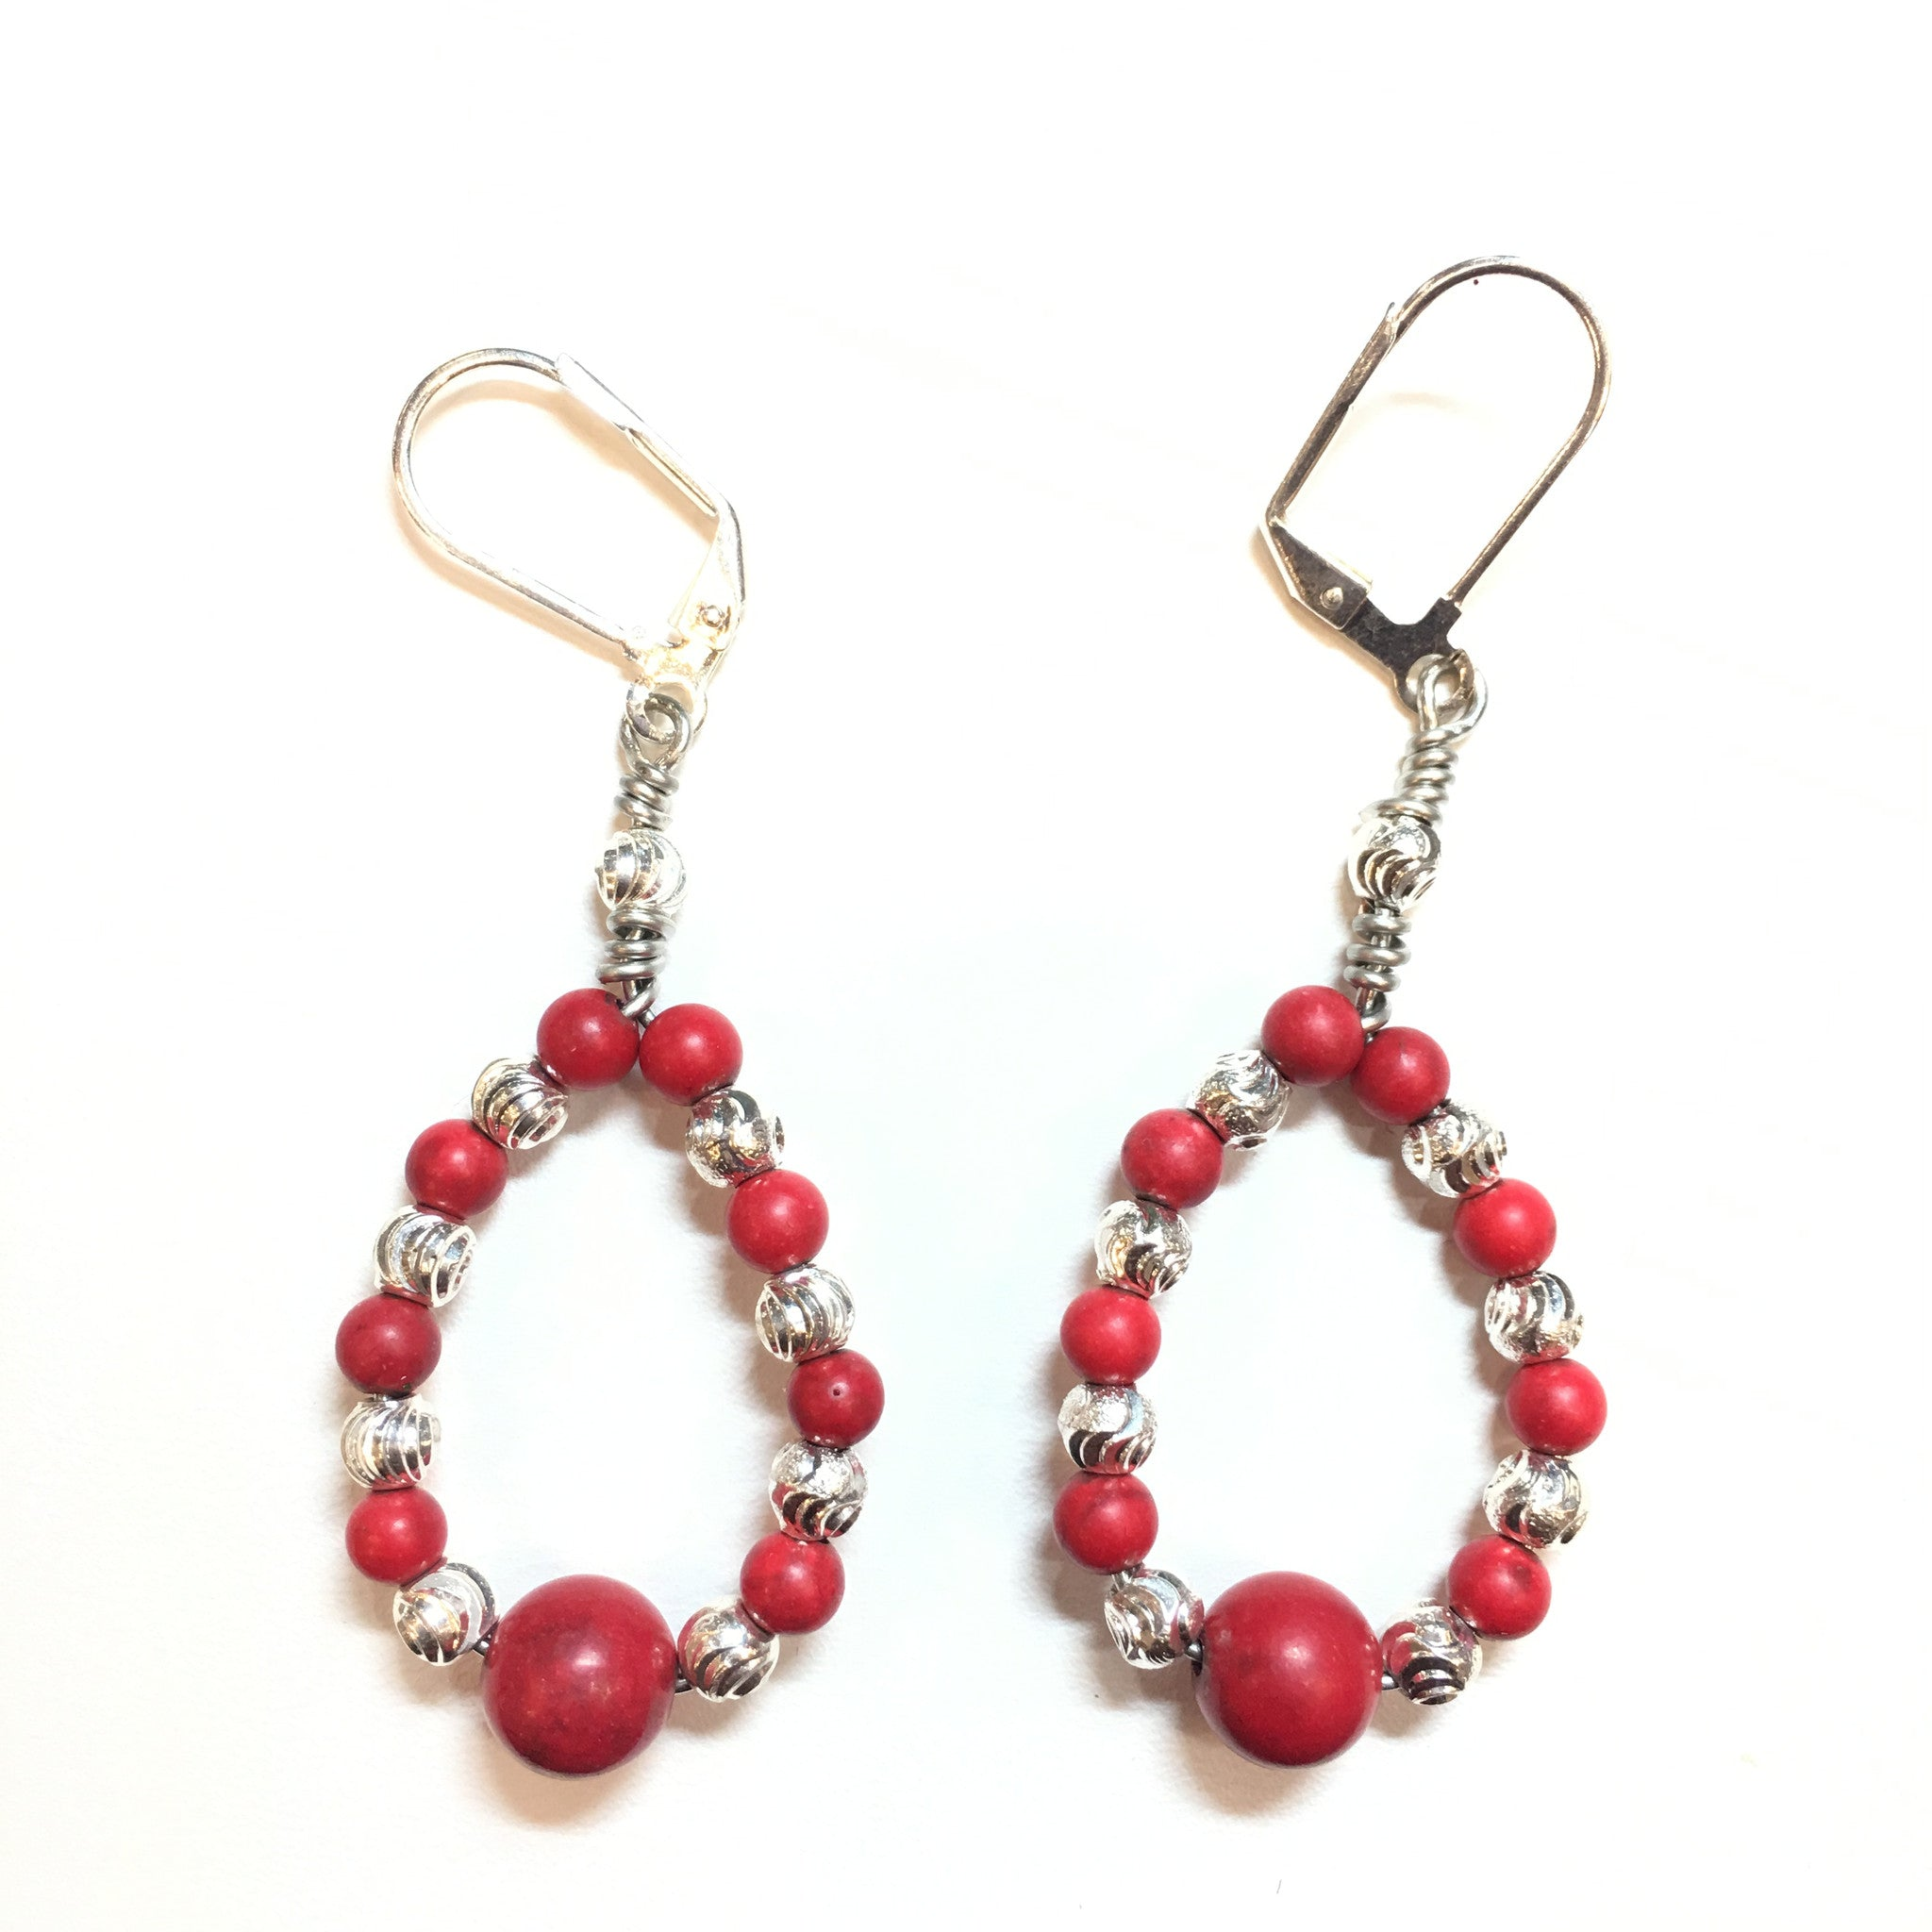 Red Coral and Silver Teardrop Earring - Real Chic Boutique  - 1